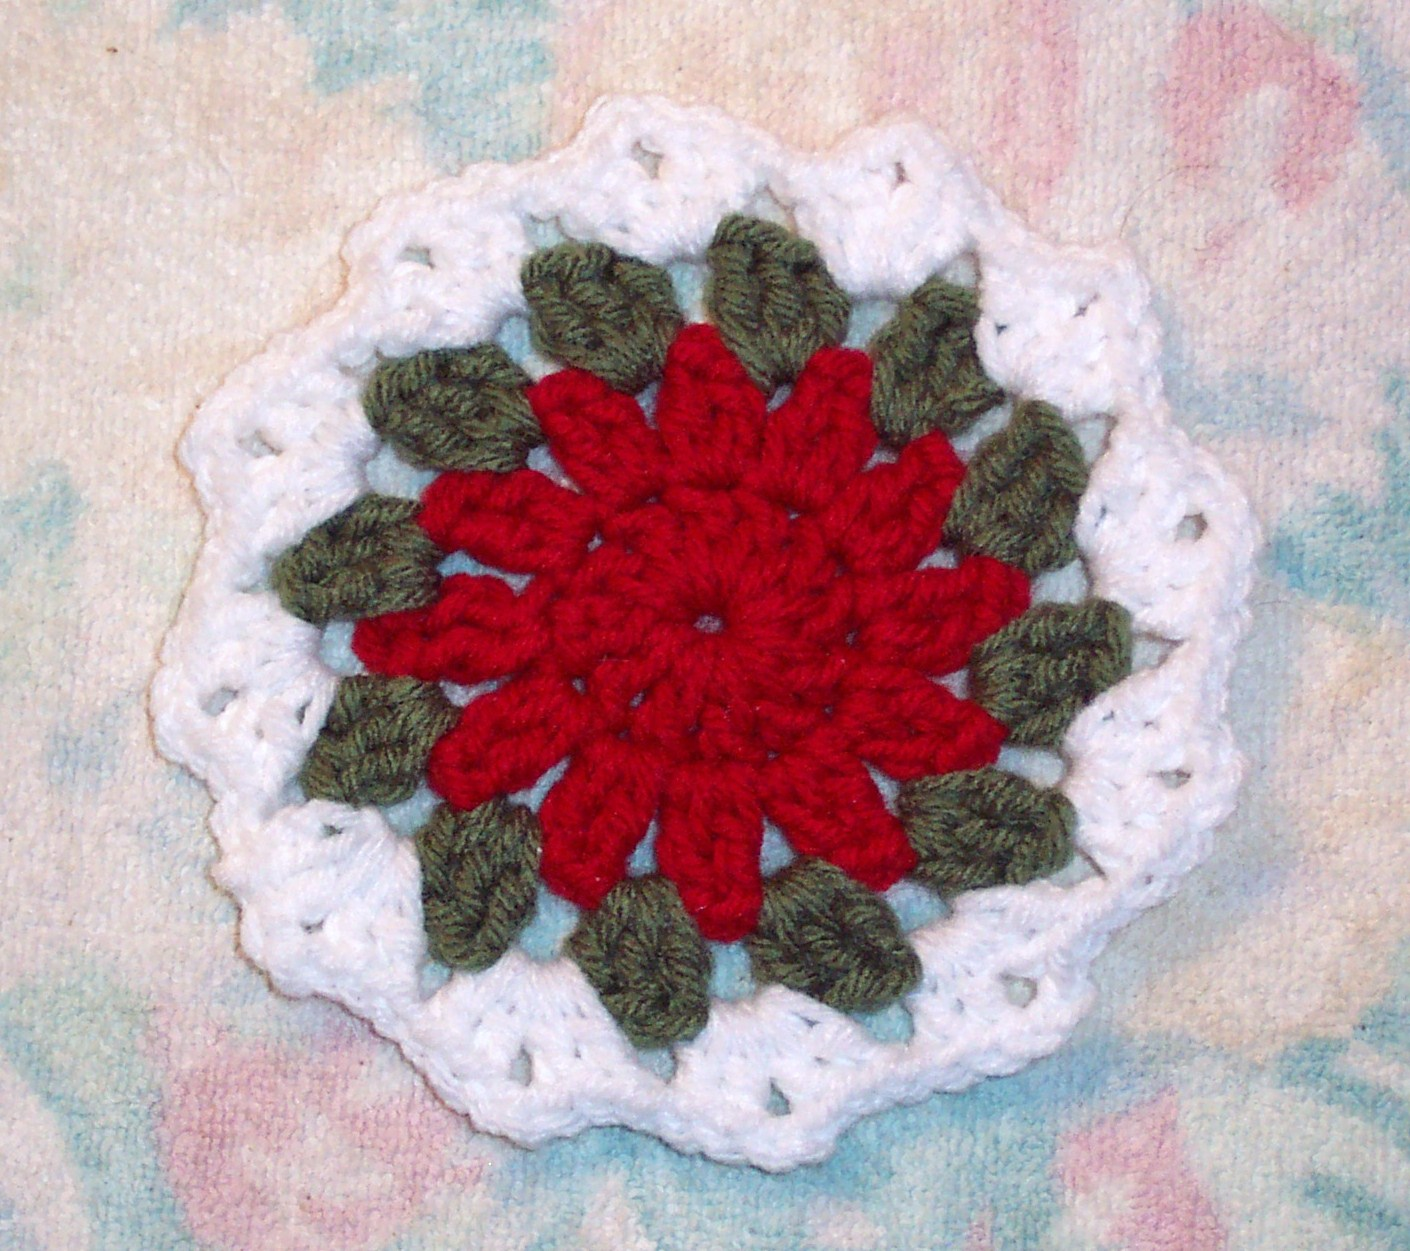 Crochet Patterns Online : SmoothFox Crochet and Knit: SmoothFoxs Holiday Coaster - Free Pattern